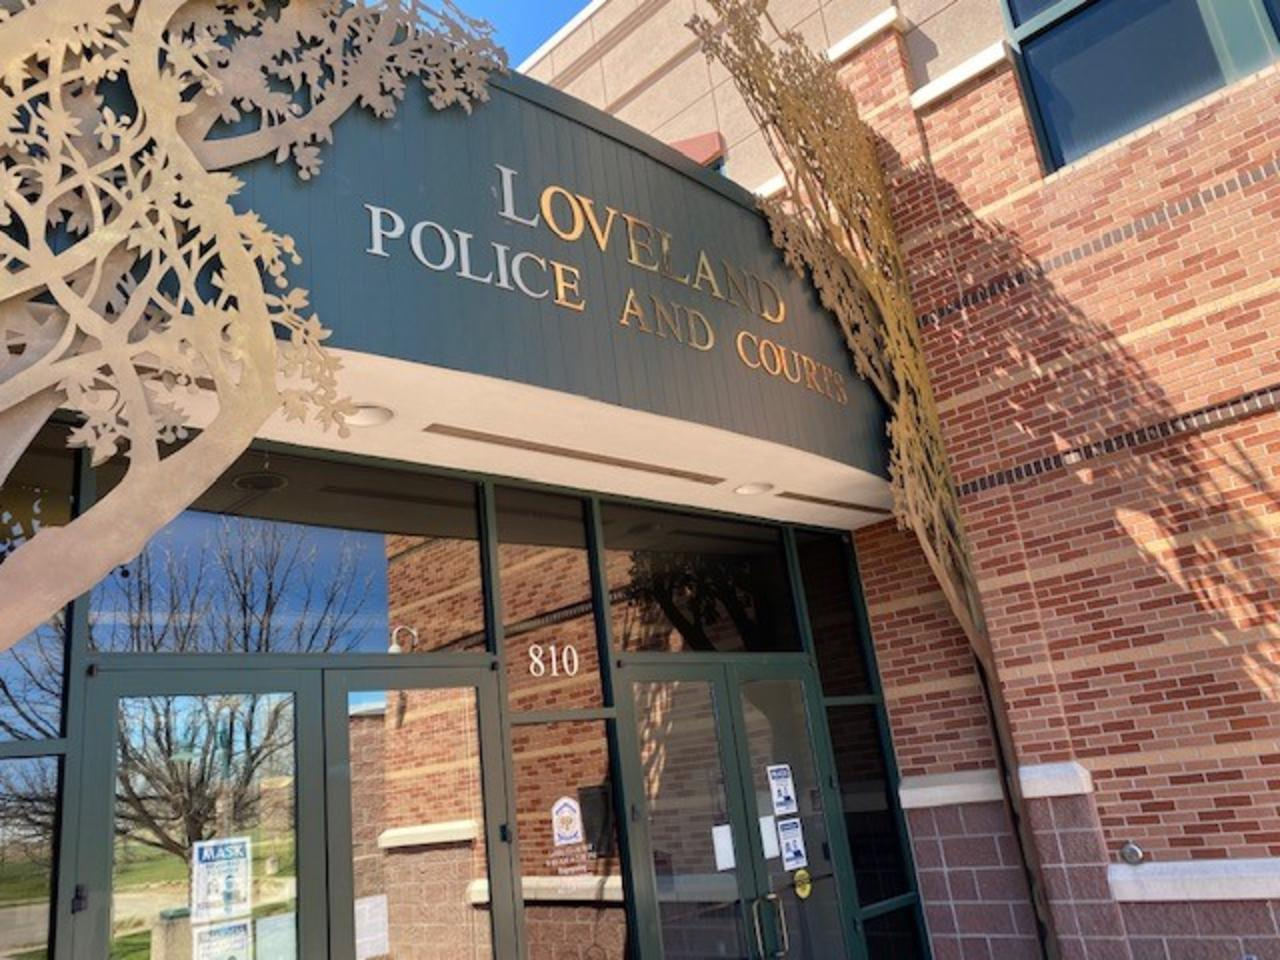 Johnstown man worries entire Loveland Police Department is being tarnished by a few officers